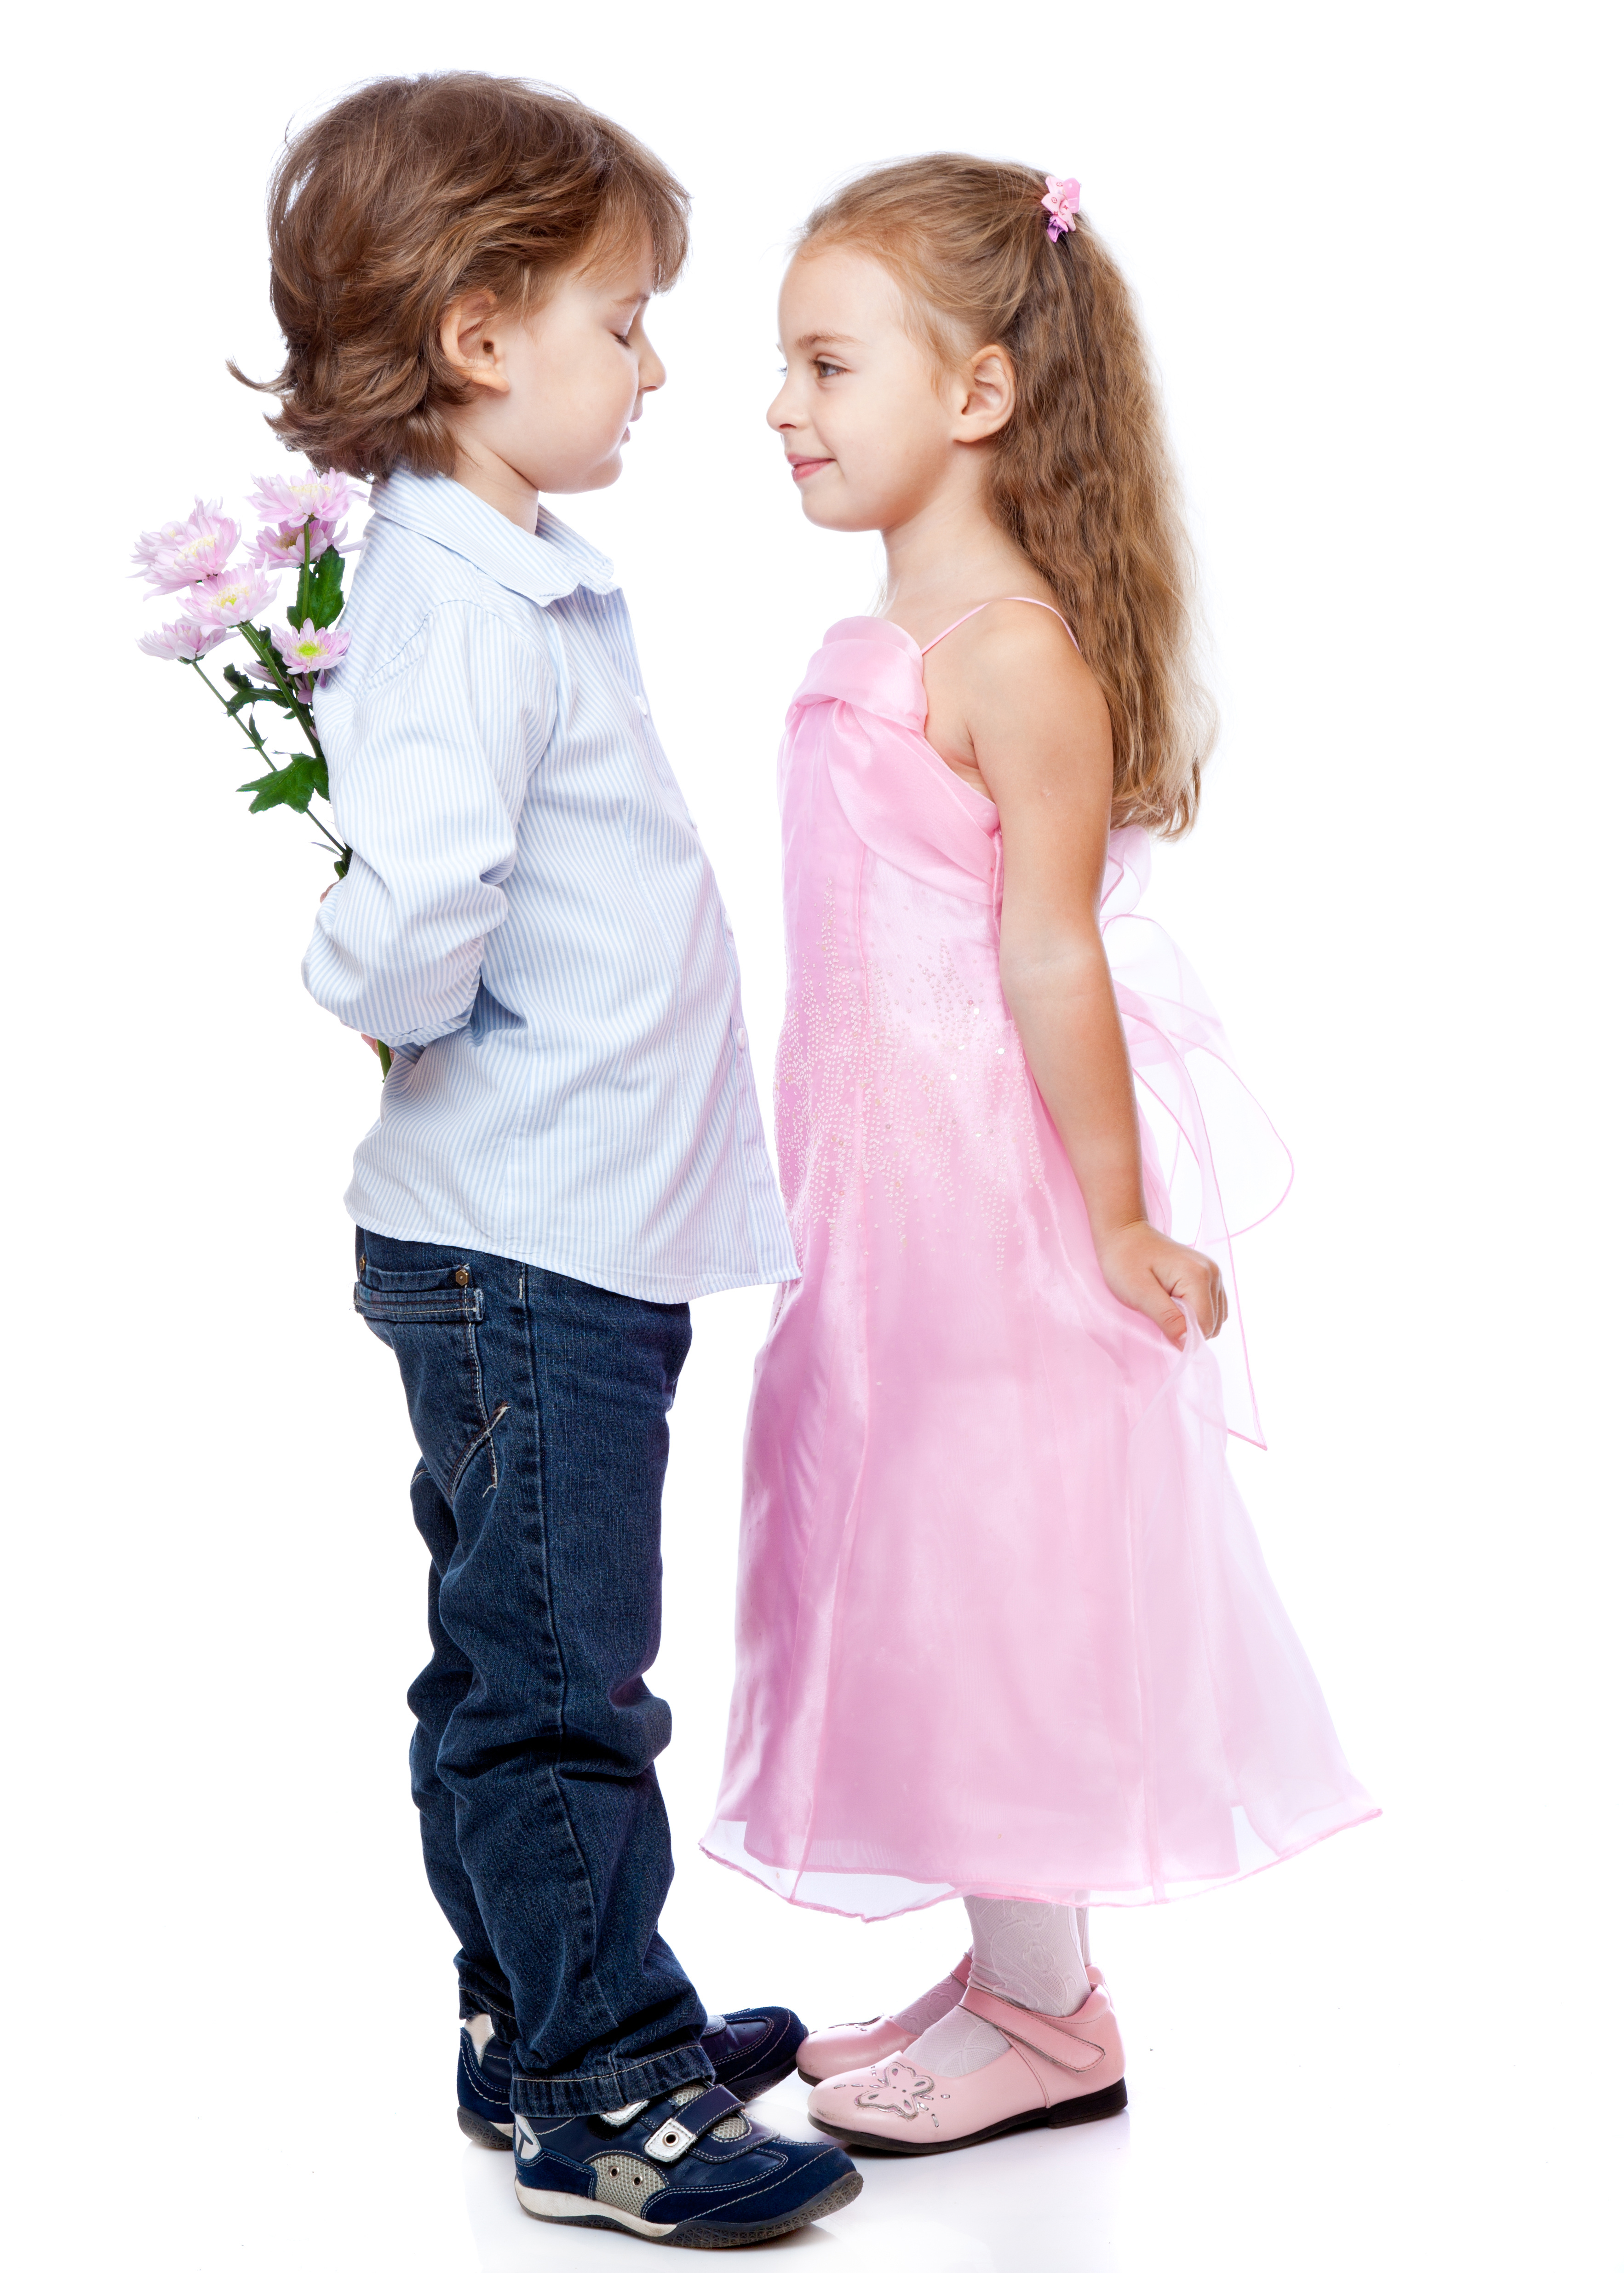 http://iphoto.md/images/2014/11/02/fotolia_28146145.jpg